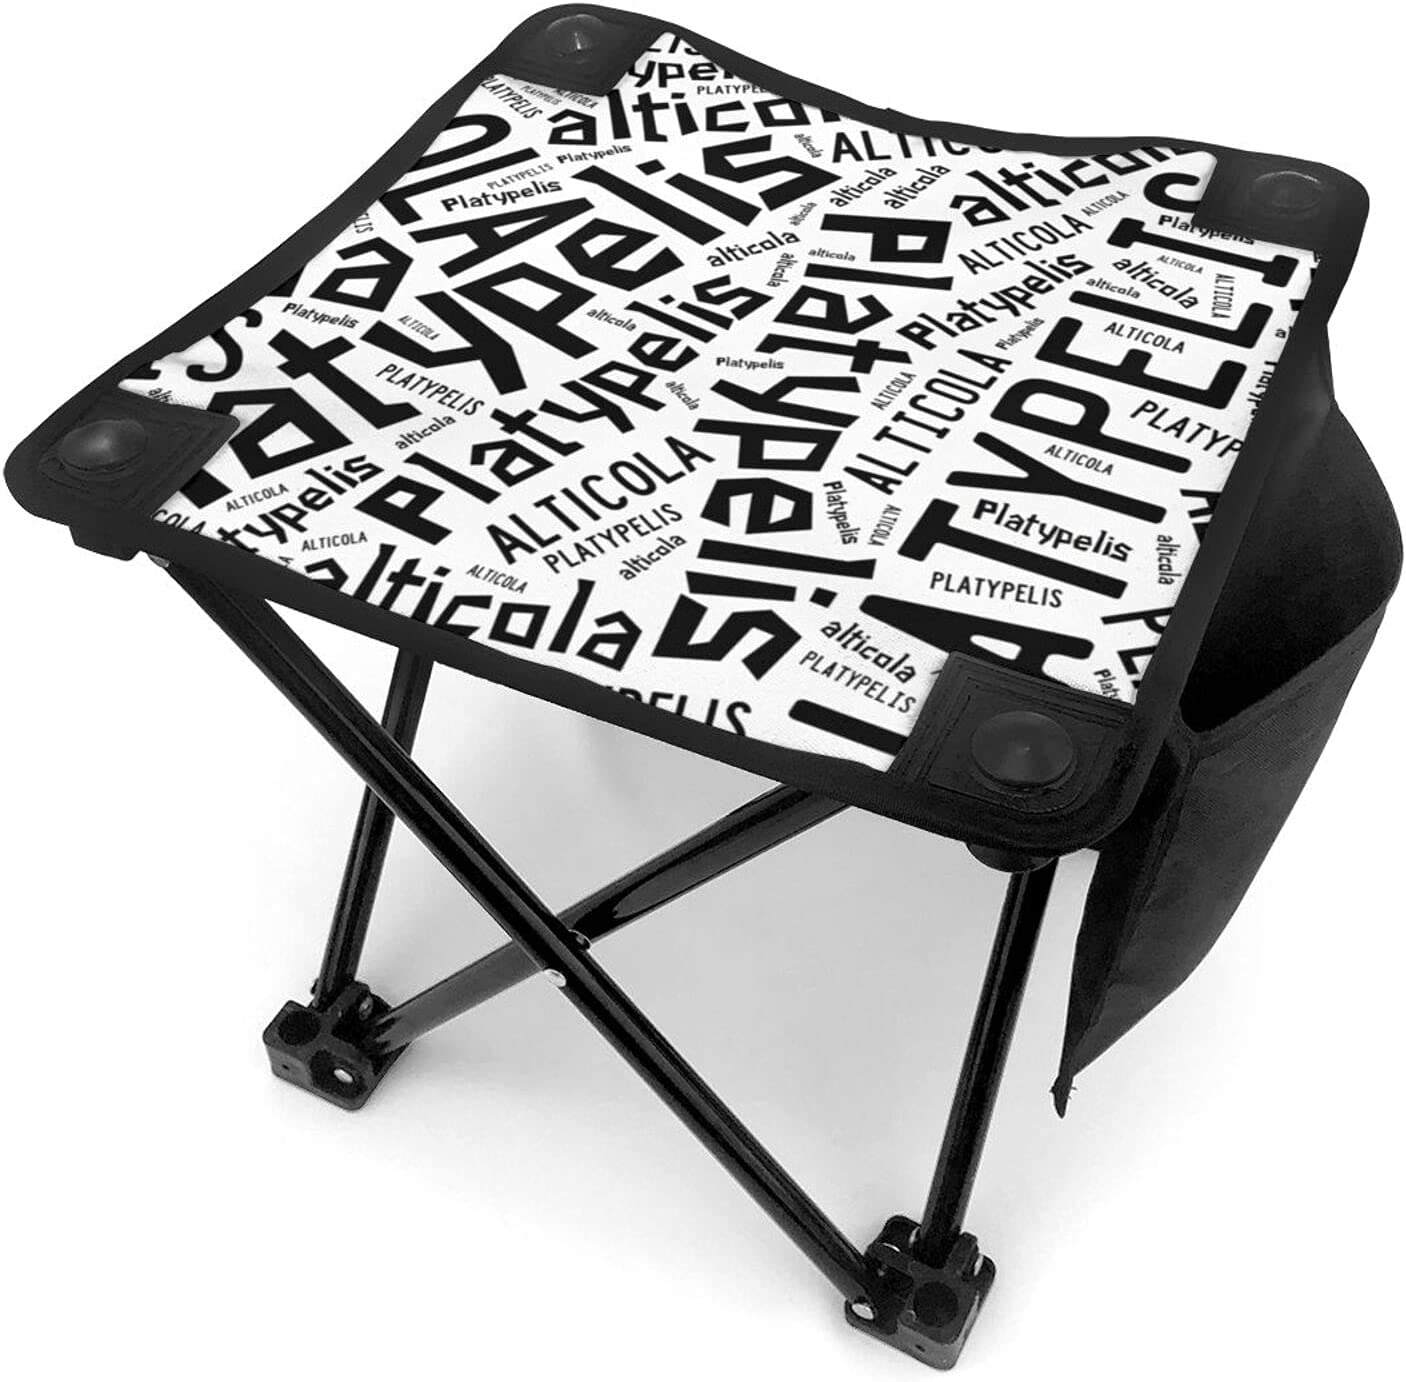 price Endangered Species Platypelis Alticola Folding Stool Camping Max 61% OFF Oxf